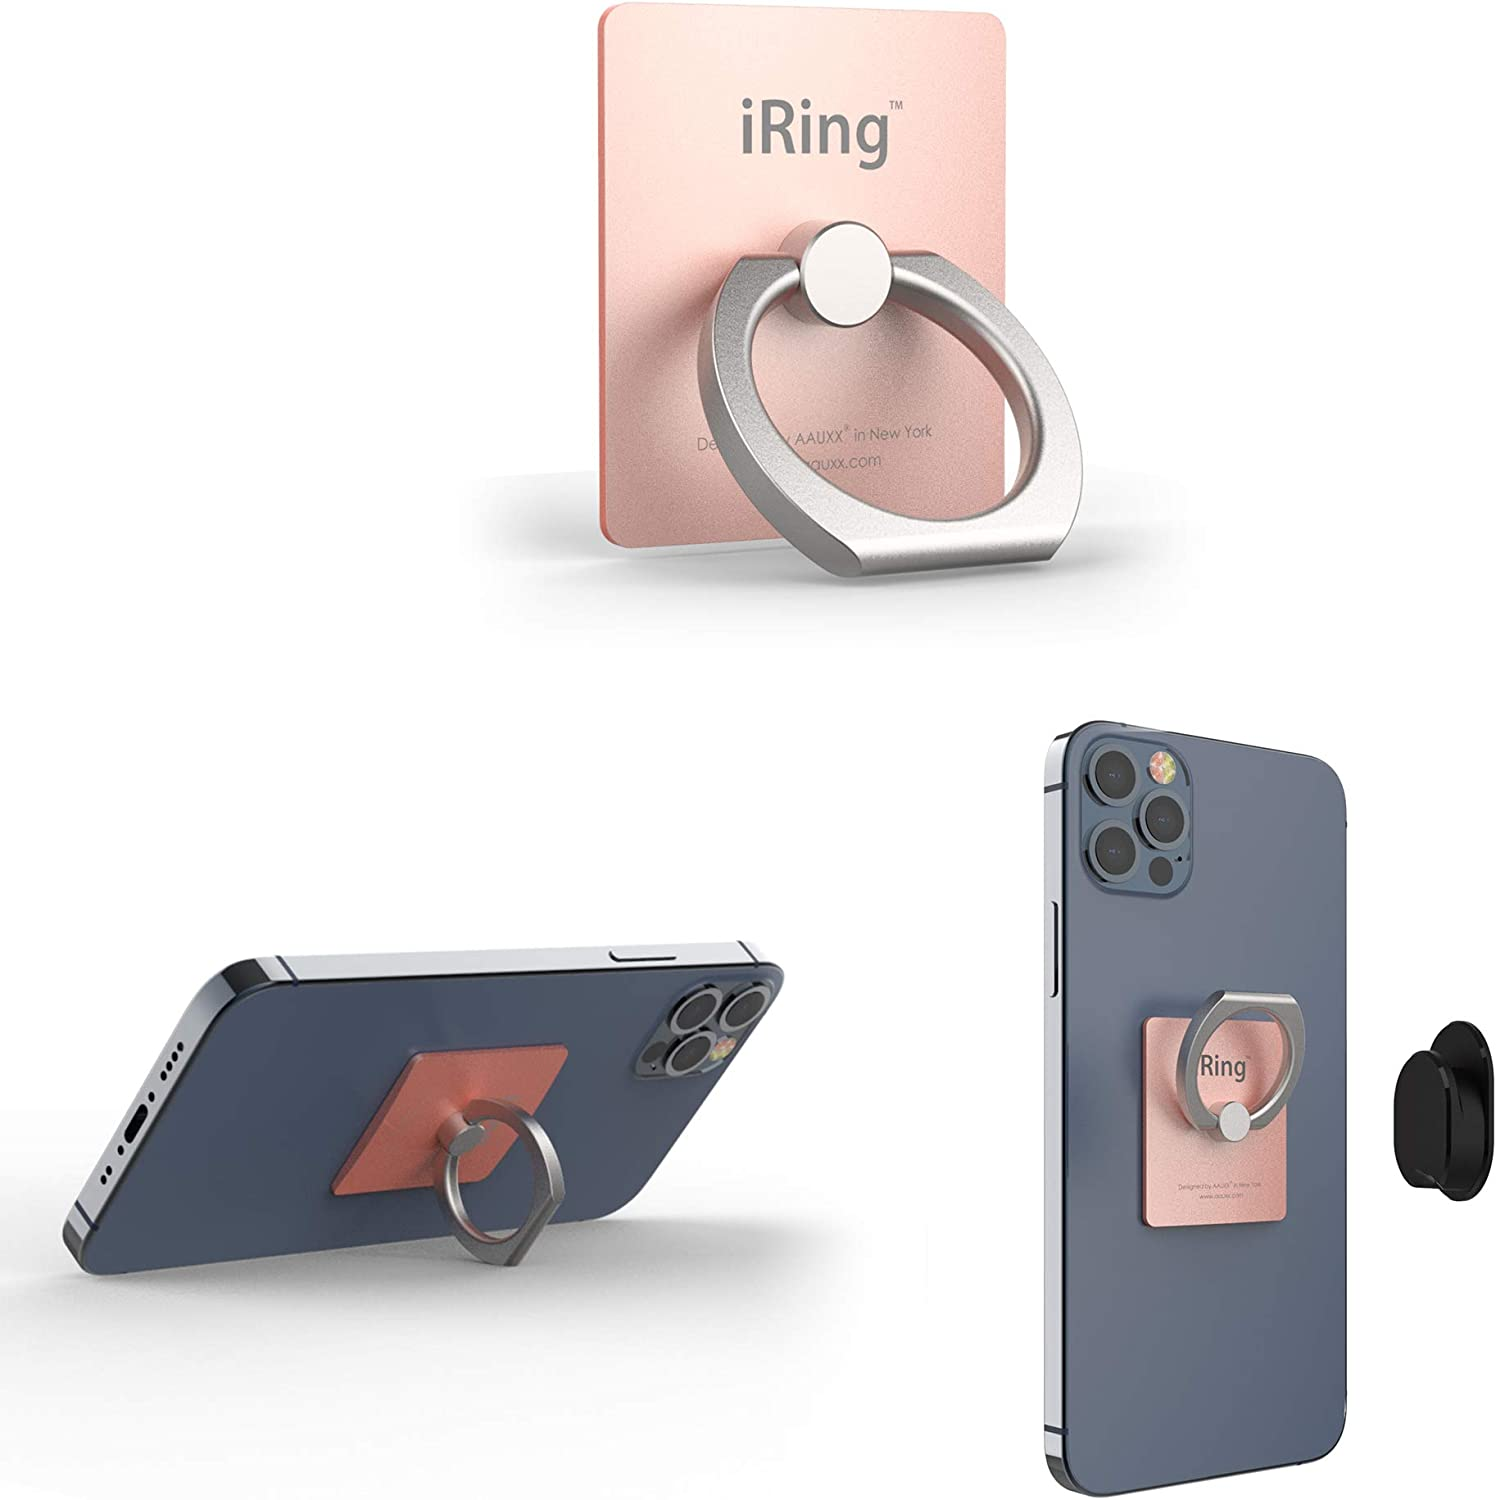 iRing Original - AAUXX Cell Phone Ring Grip Finger Holder, Mobile Stand, Kickstand. iPhone, Android, Smartphones, Tablets.(Rose Gold)